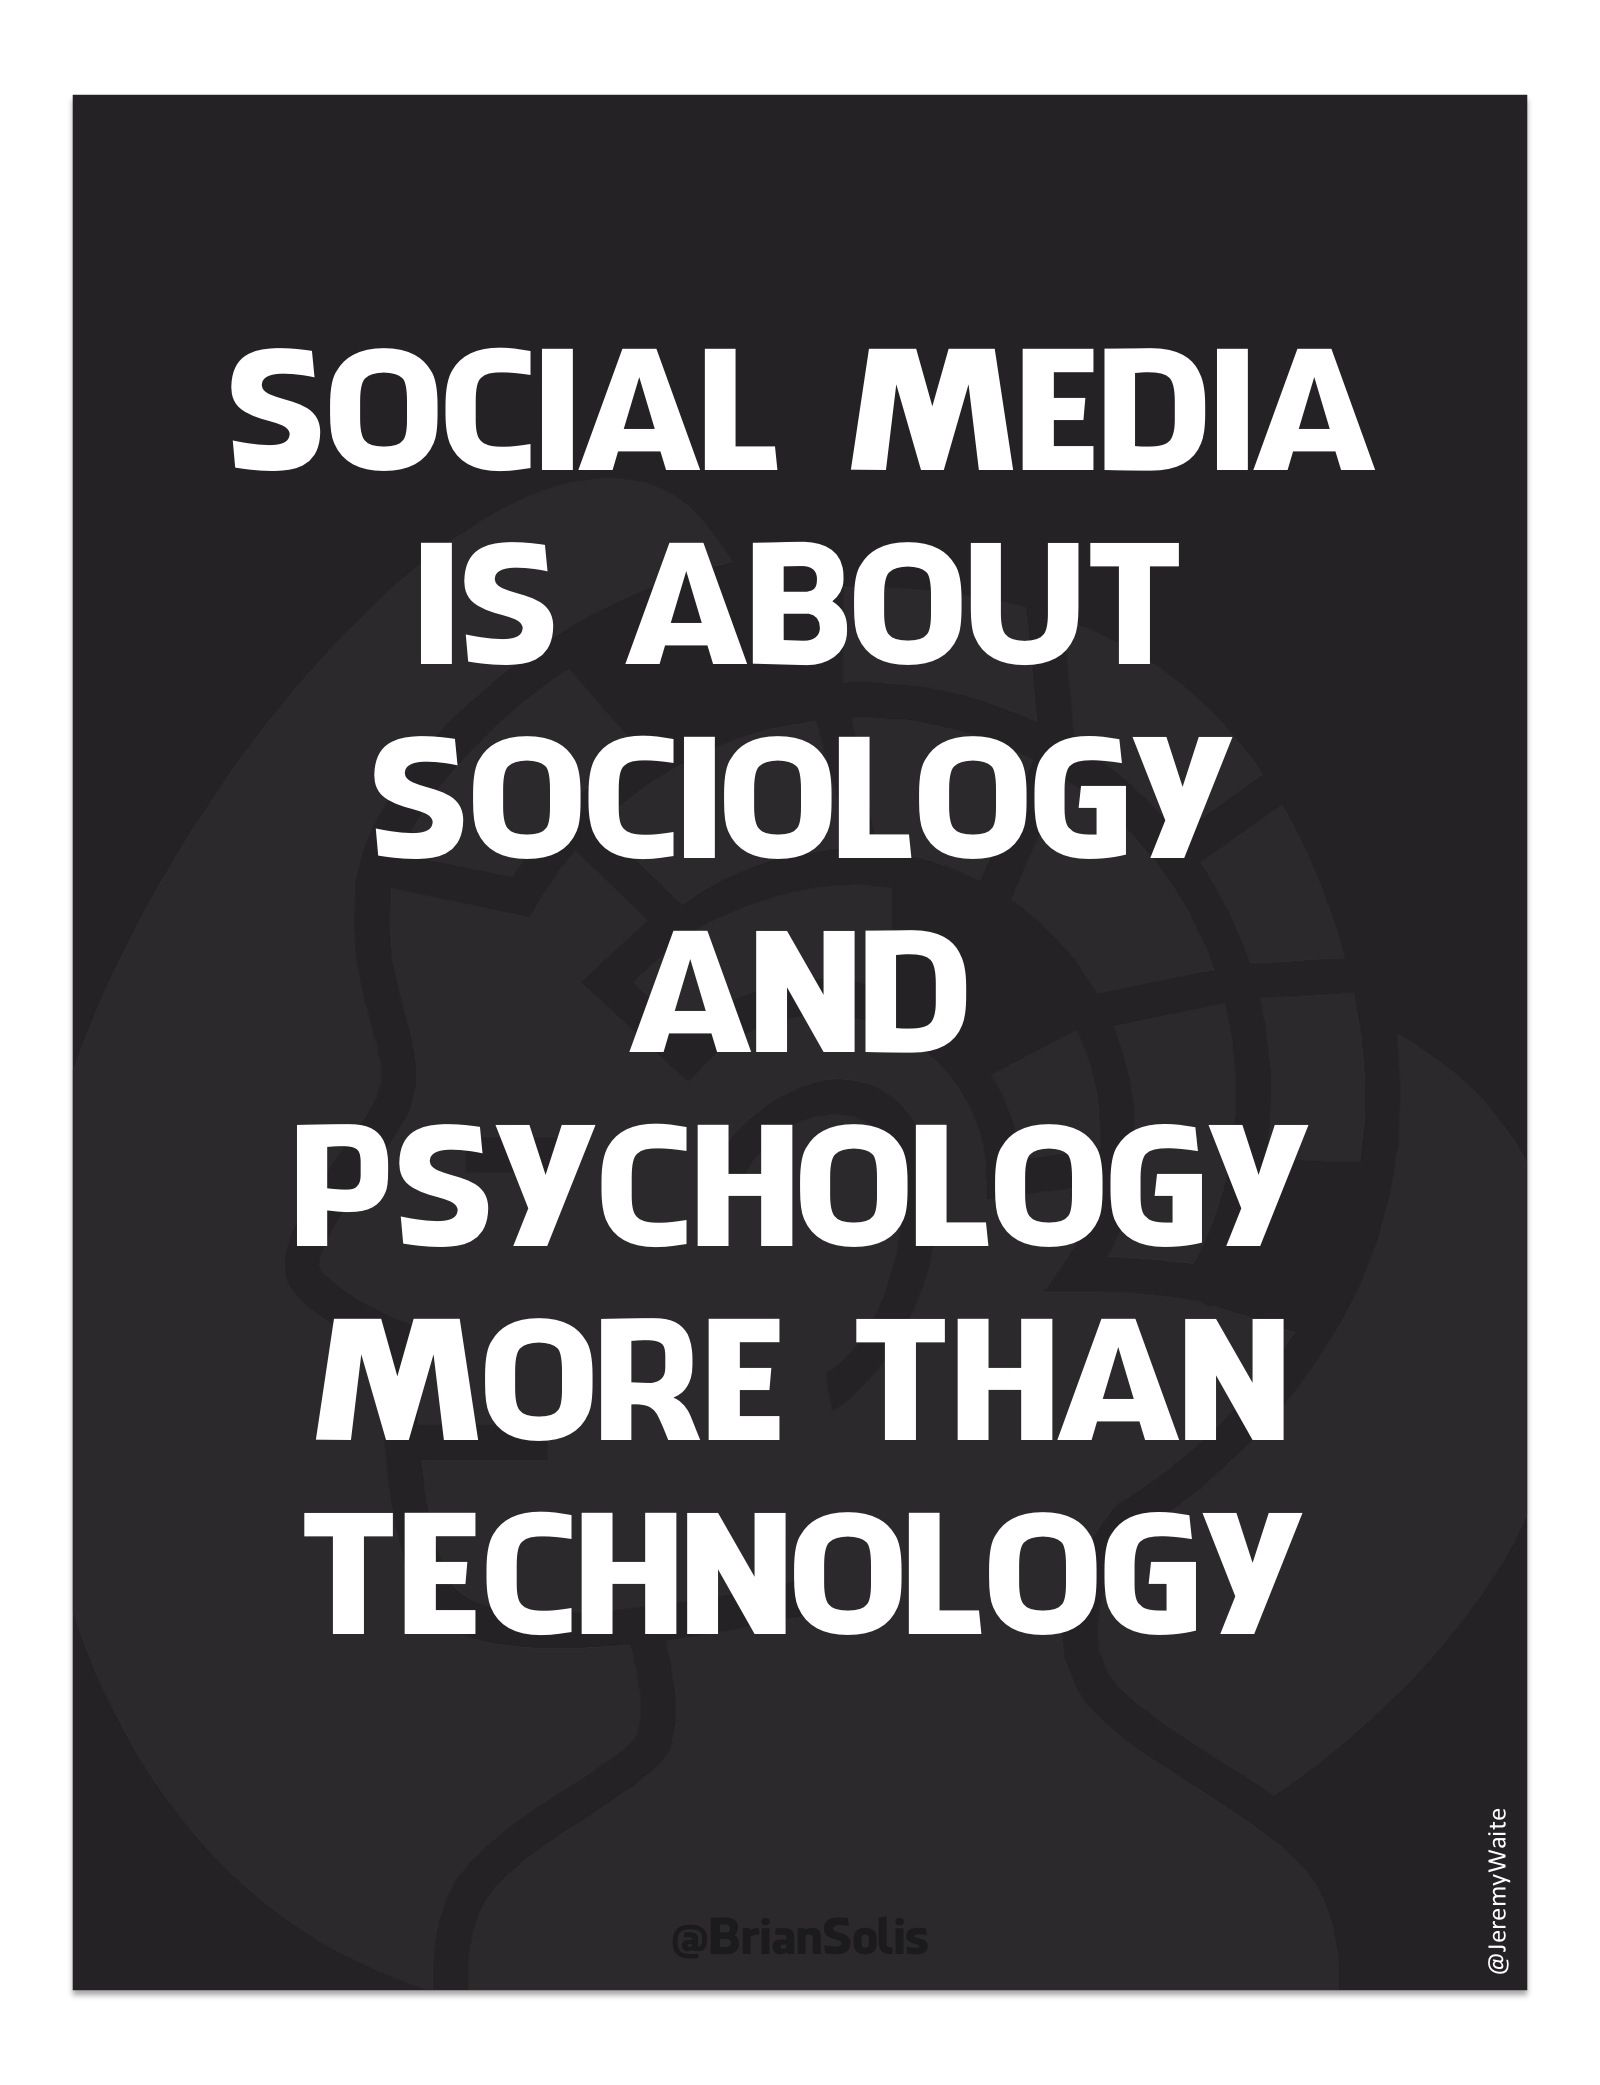 proverbs related to technology But some great records are are being made with today's technology and there are still great artists among us likewise there are artists today who are so reliant on modern technology, they wouldn't have emerged when recording was more organic.